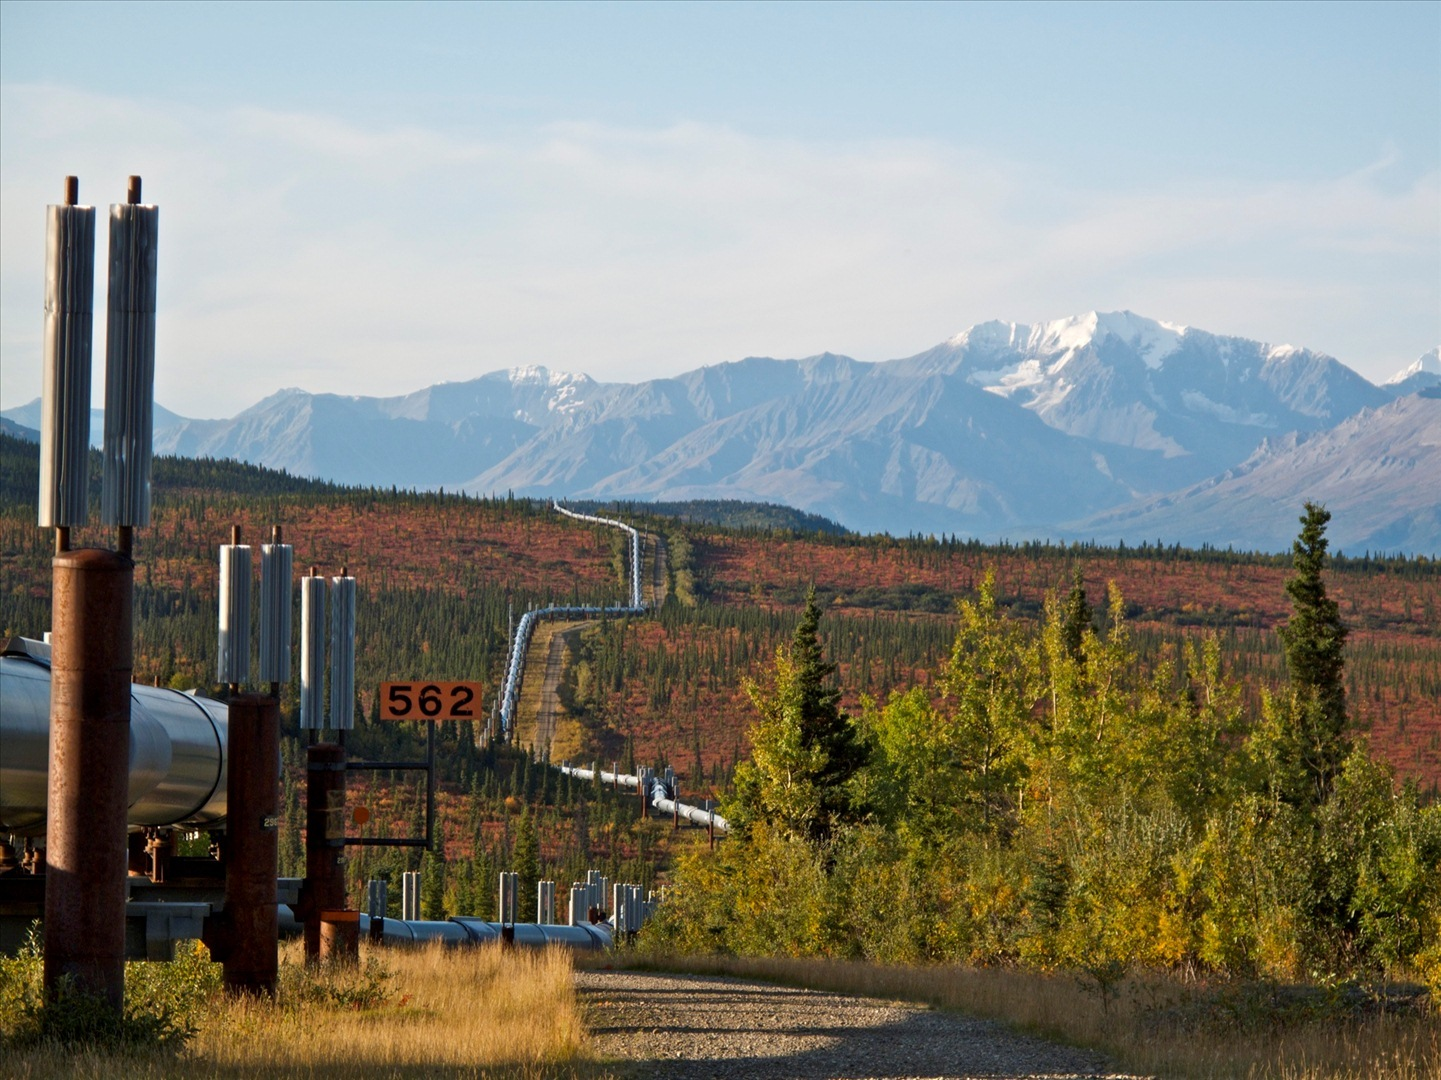 The Trans-Alaska Pipeline System (TAPS) includes the trans-Alaska crude-oil pipeline, 12 pump stations, several hundred miles of feeder pipelines, and the Valdez Marine Terminal.